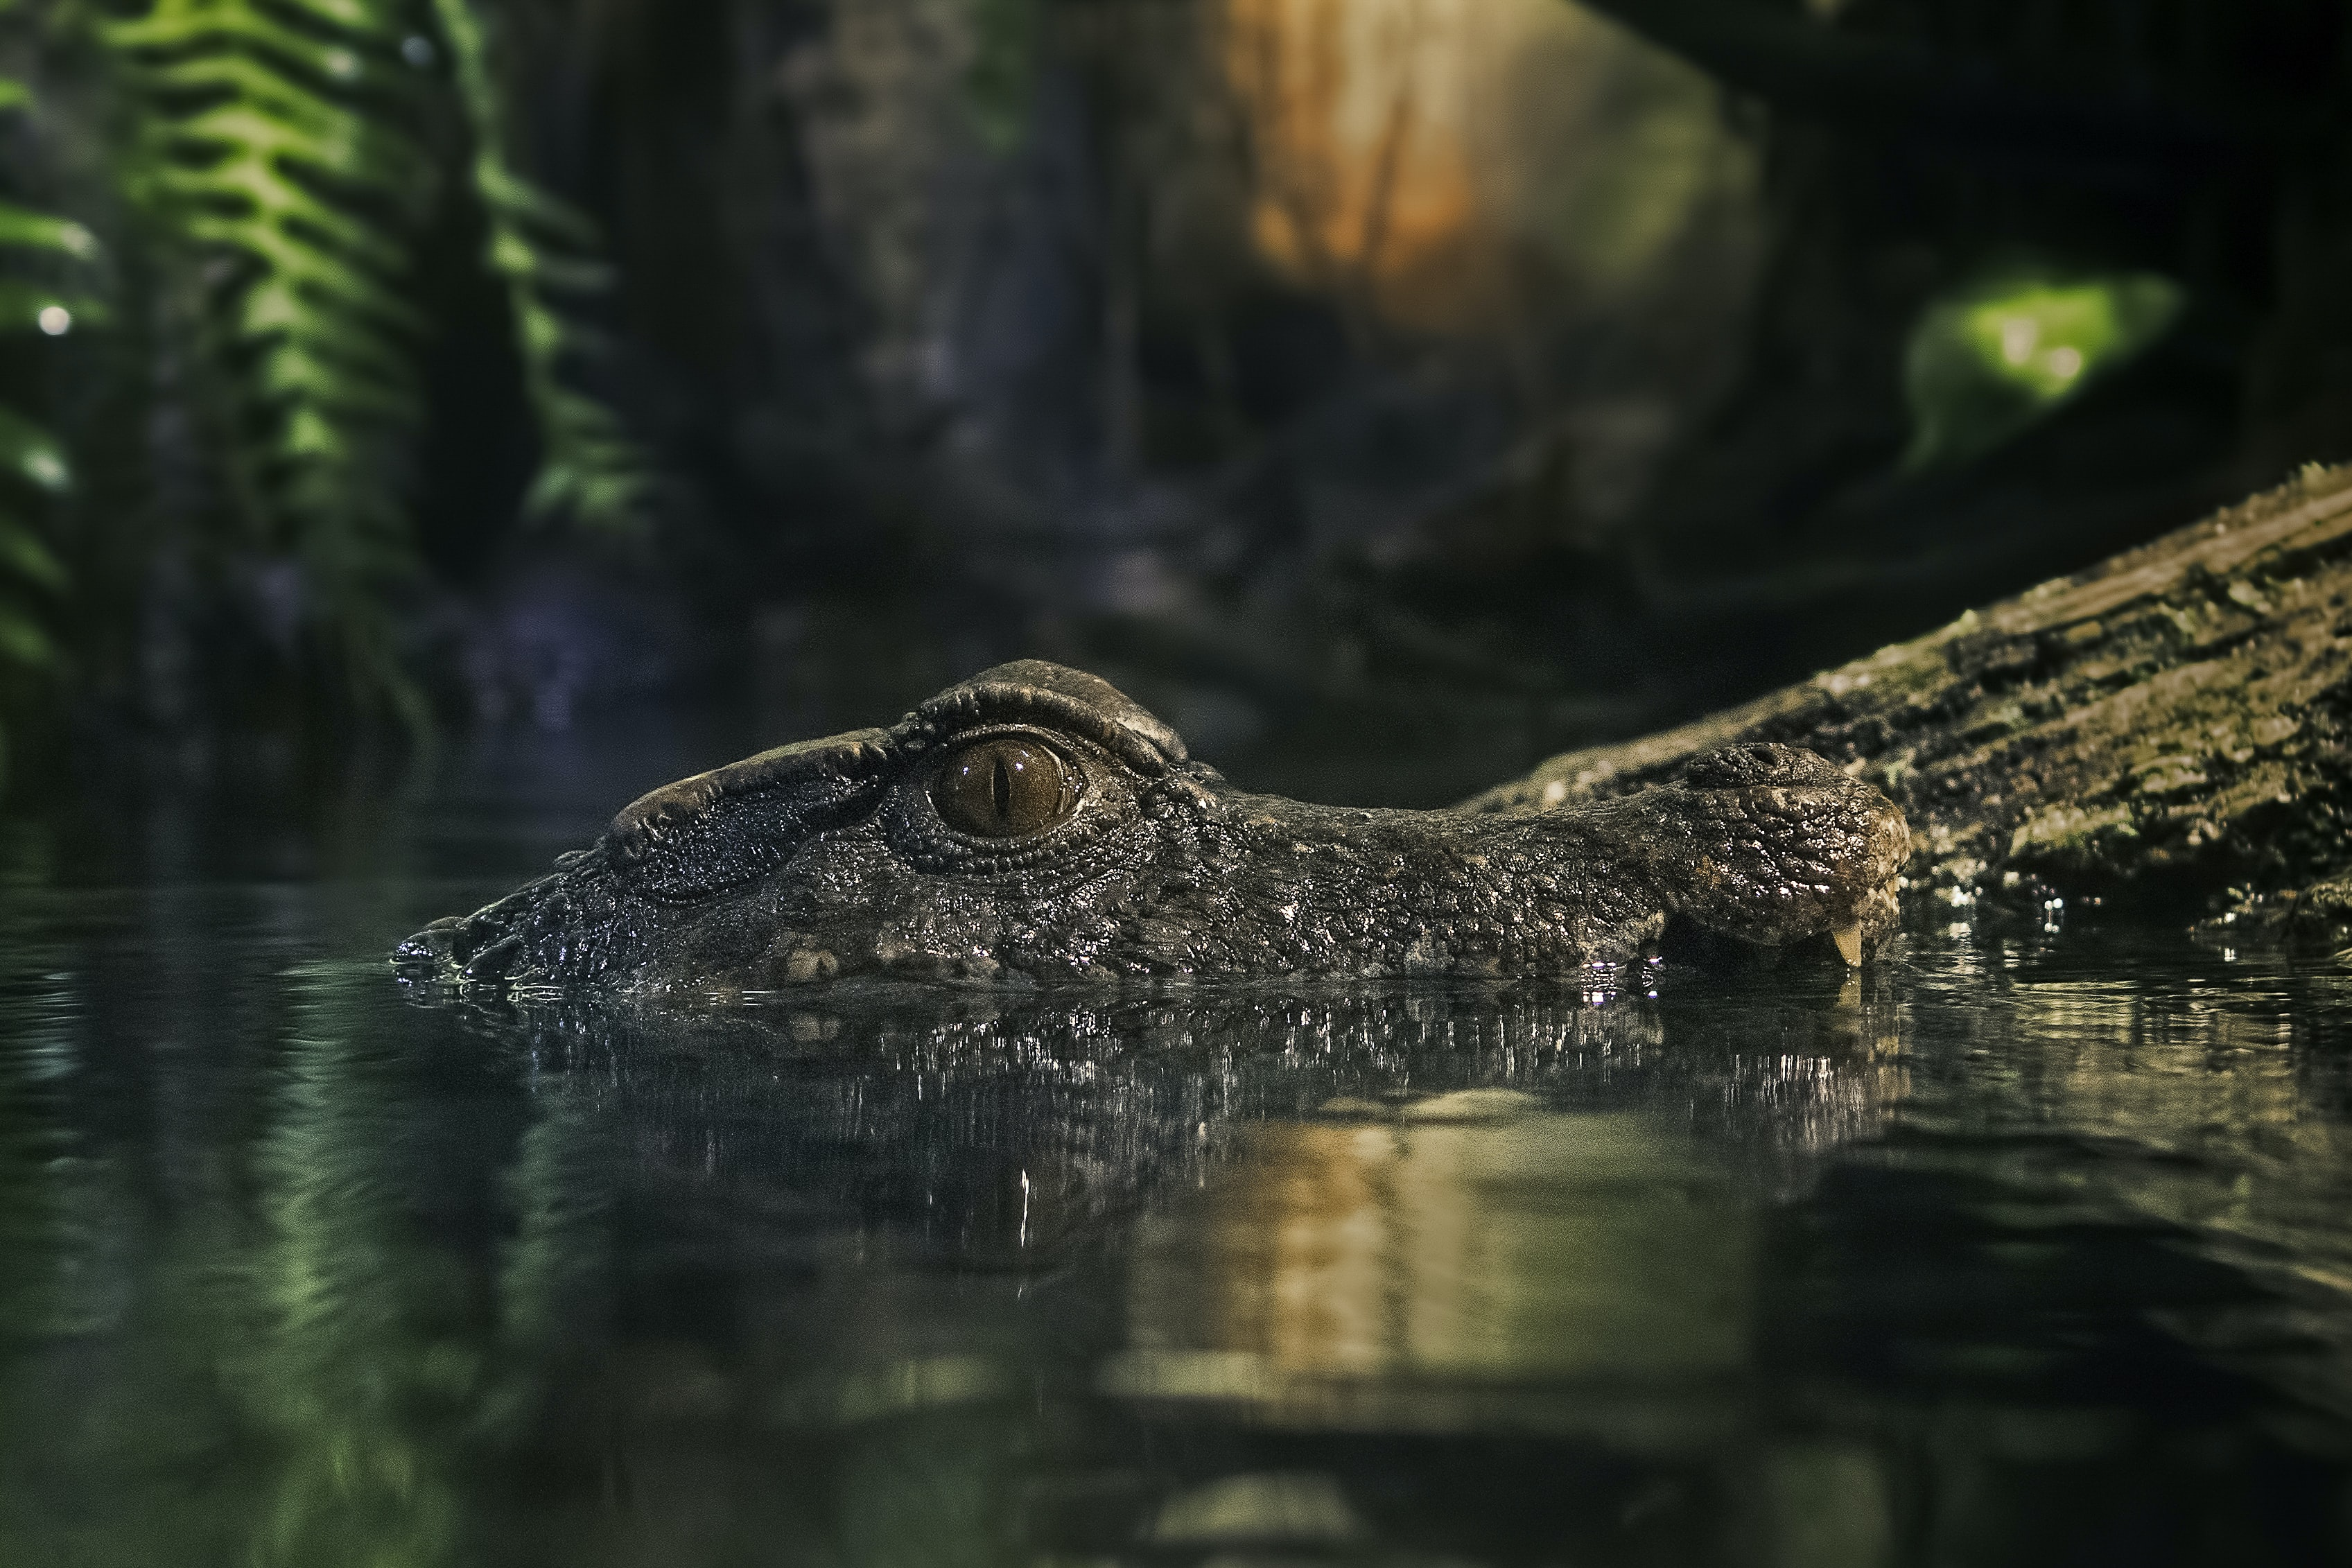 macro photography of crocodile on body of water